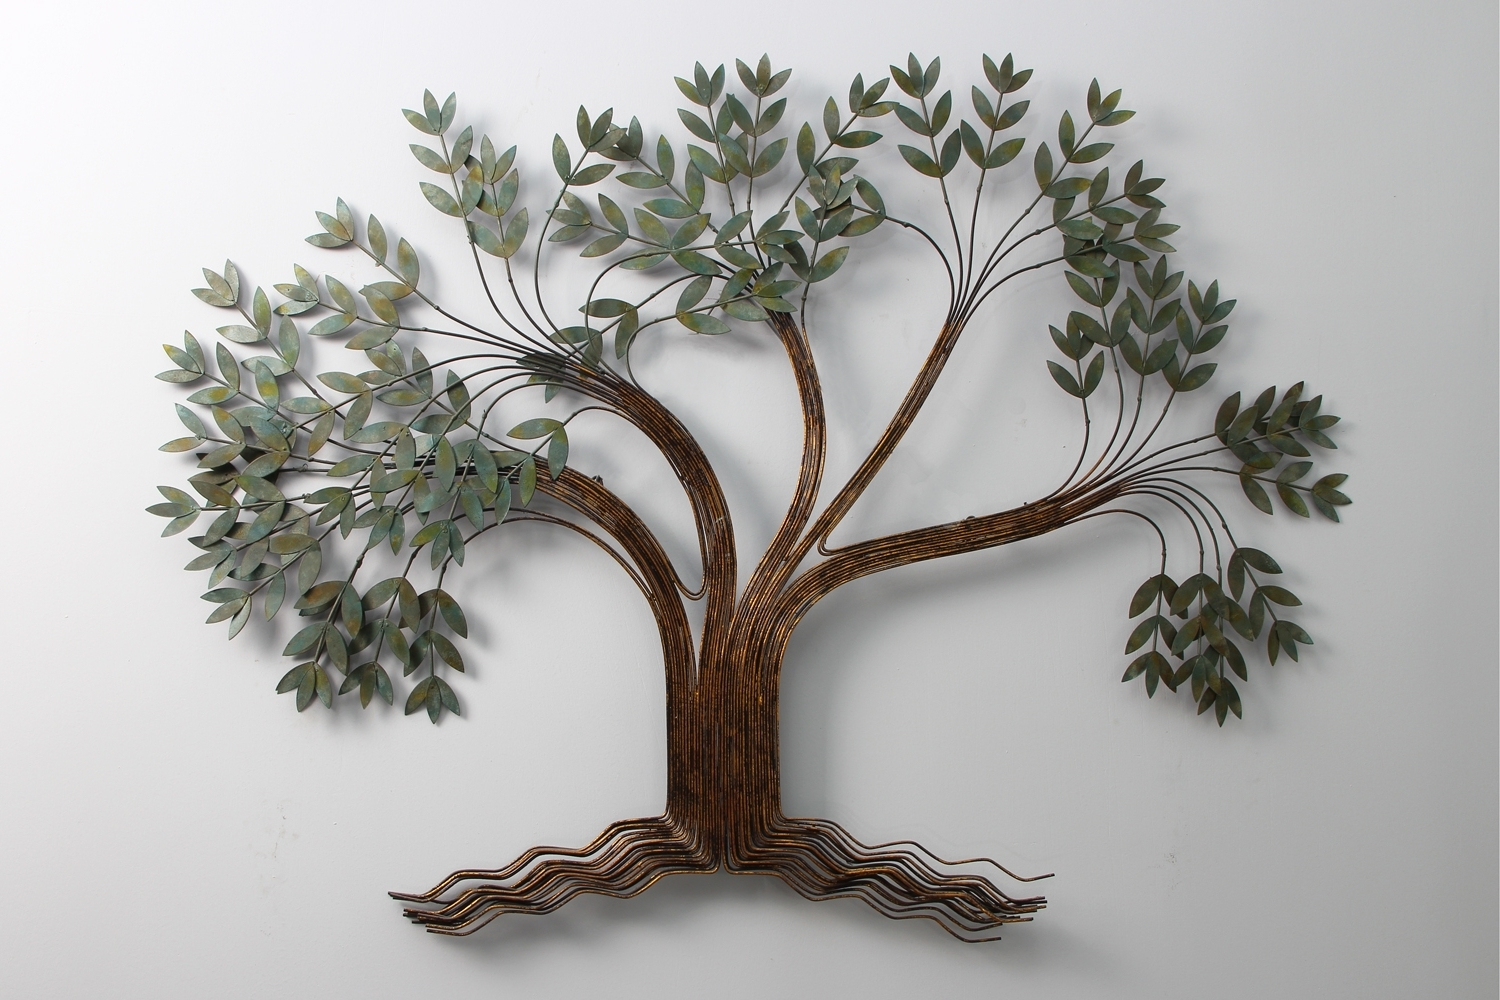 Tree Wall Art Sculpture In Most Current Metal Art Wall Decor Sculpture (View 9 of 15)